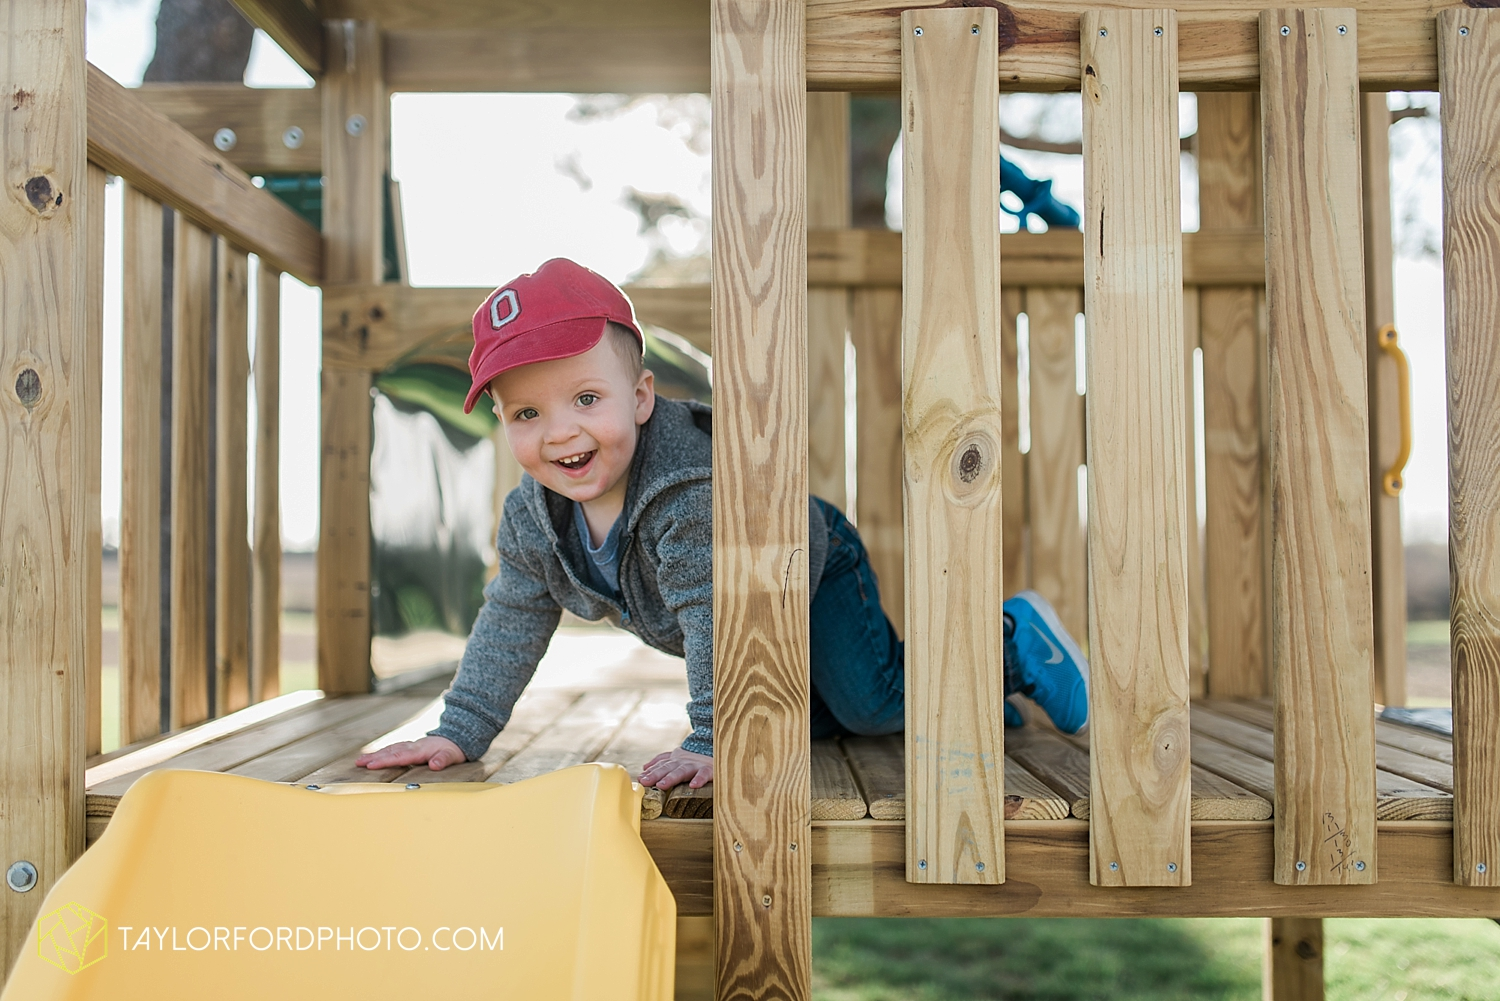 nashville_tennessee_taylor_ford_photography_lifestyle_newborn_family_photographer_4699.jpg